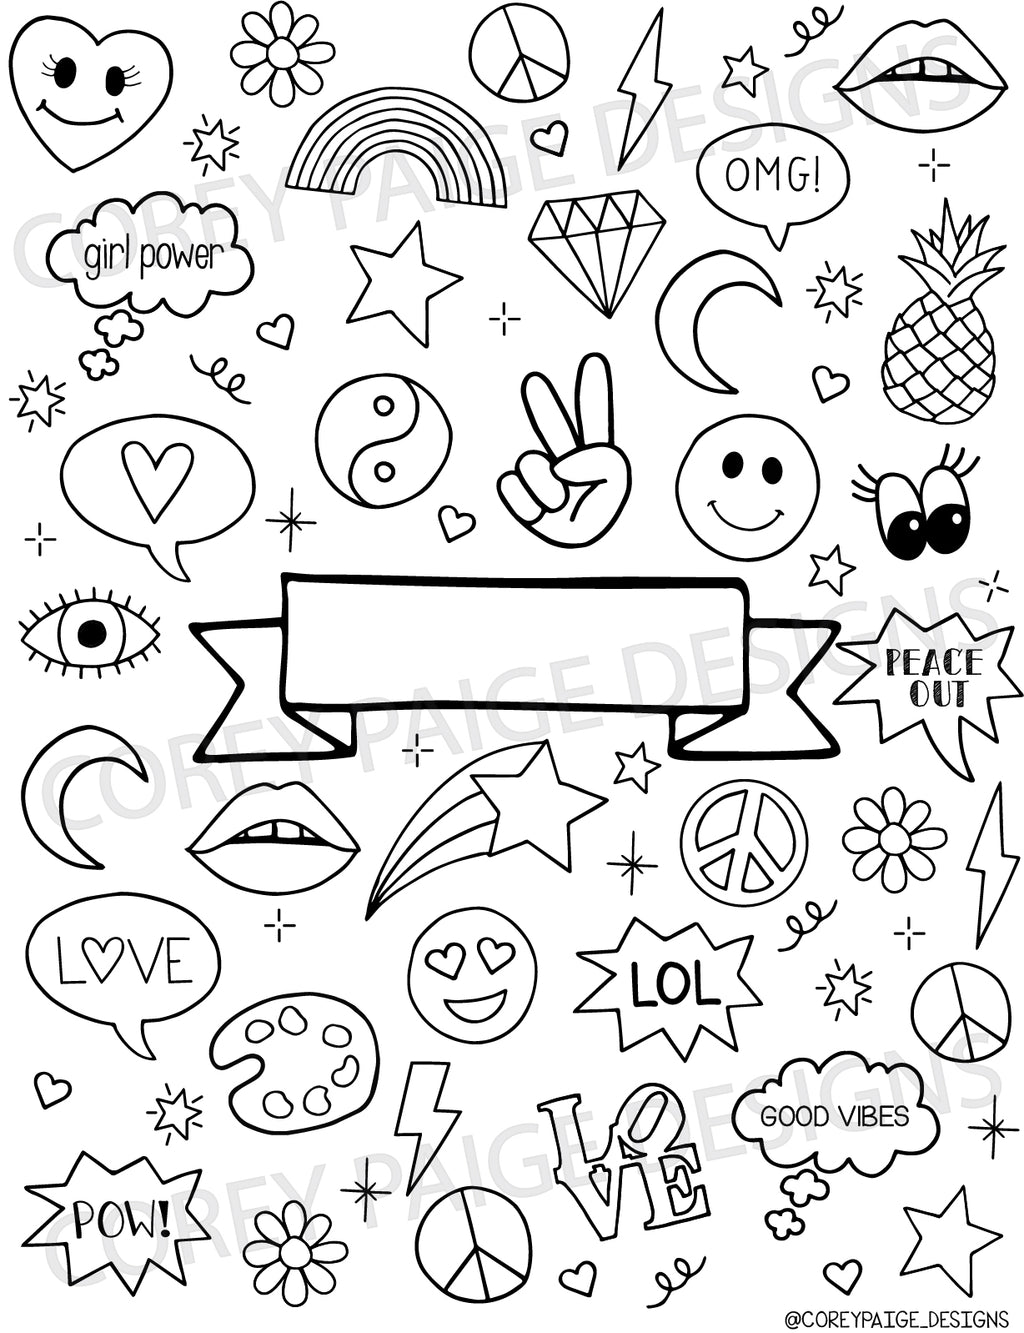 Good Vibes Coloring Sheet Pack